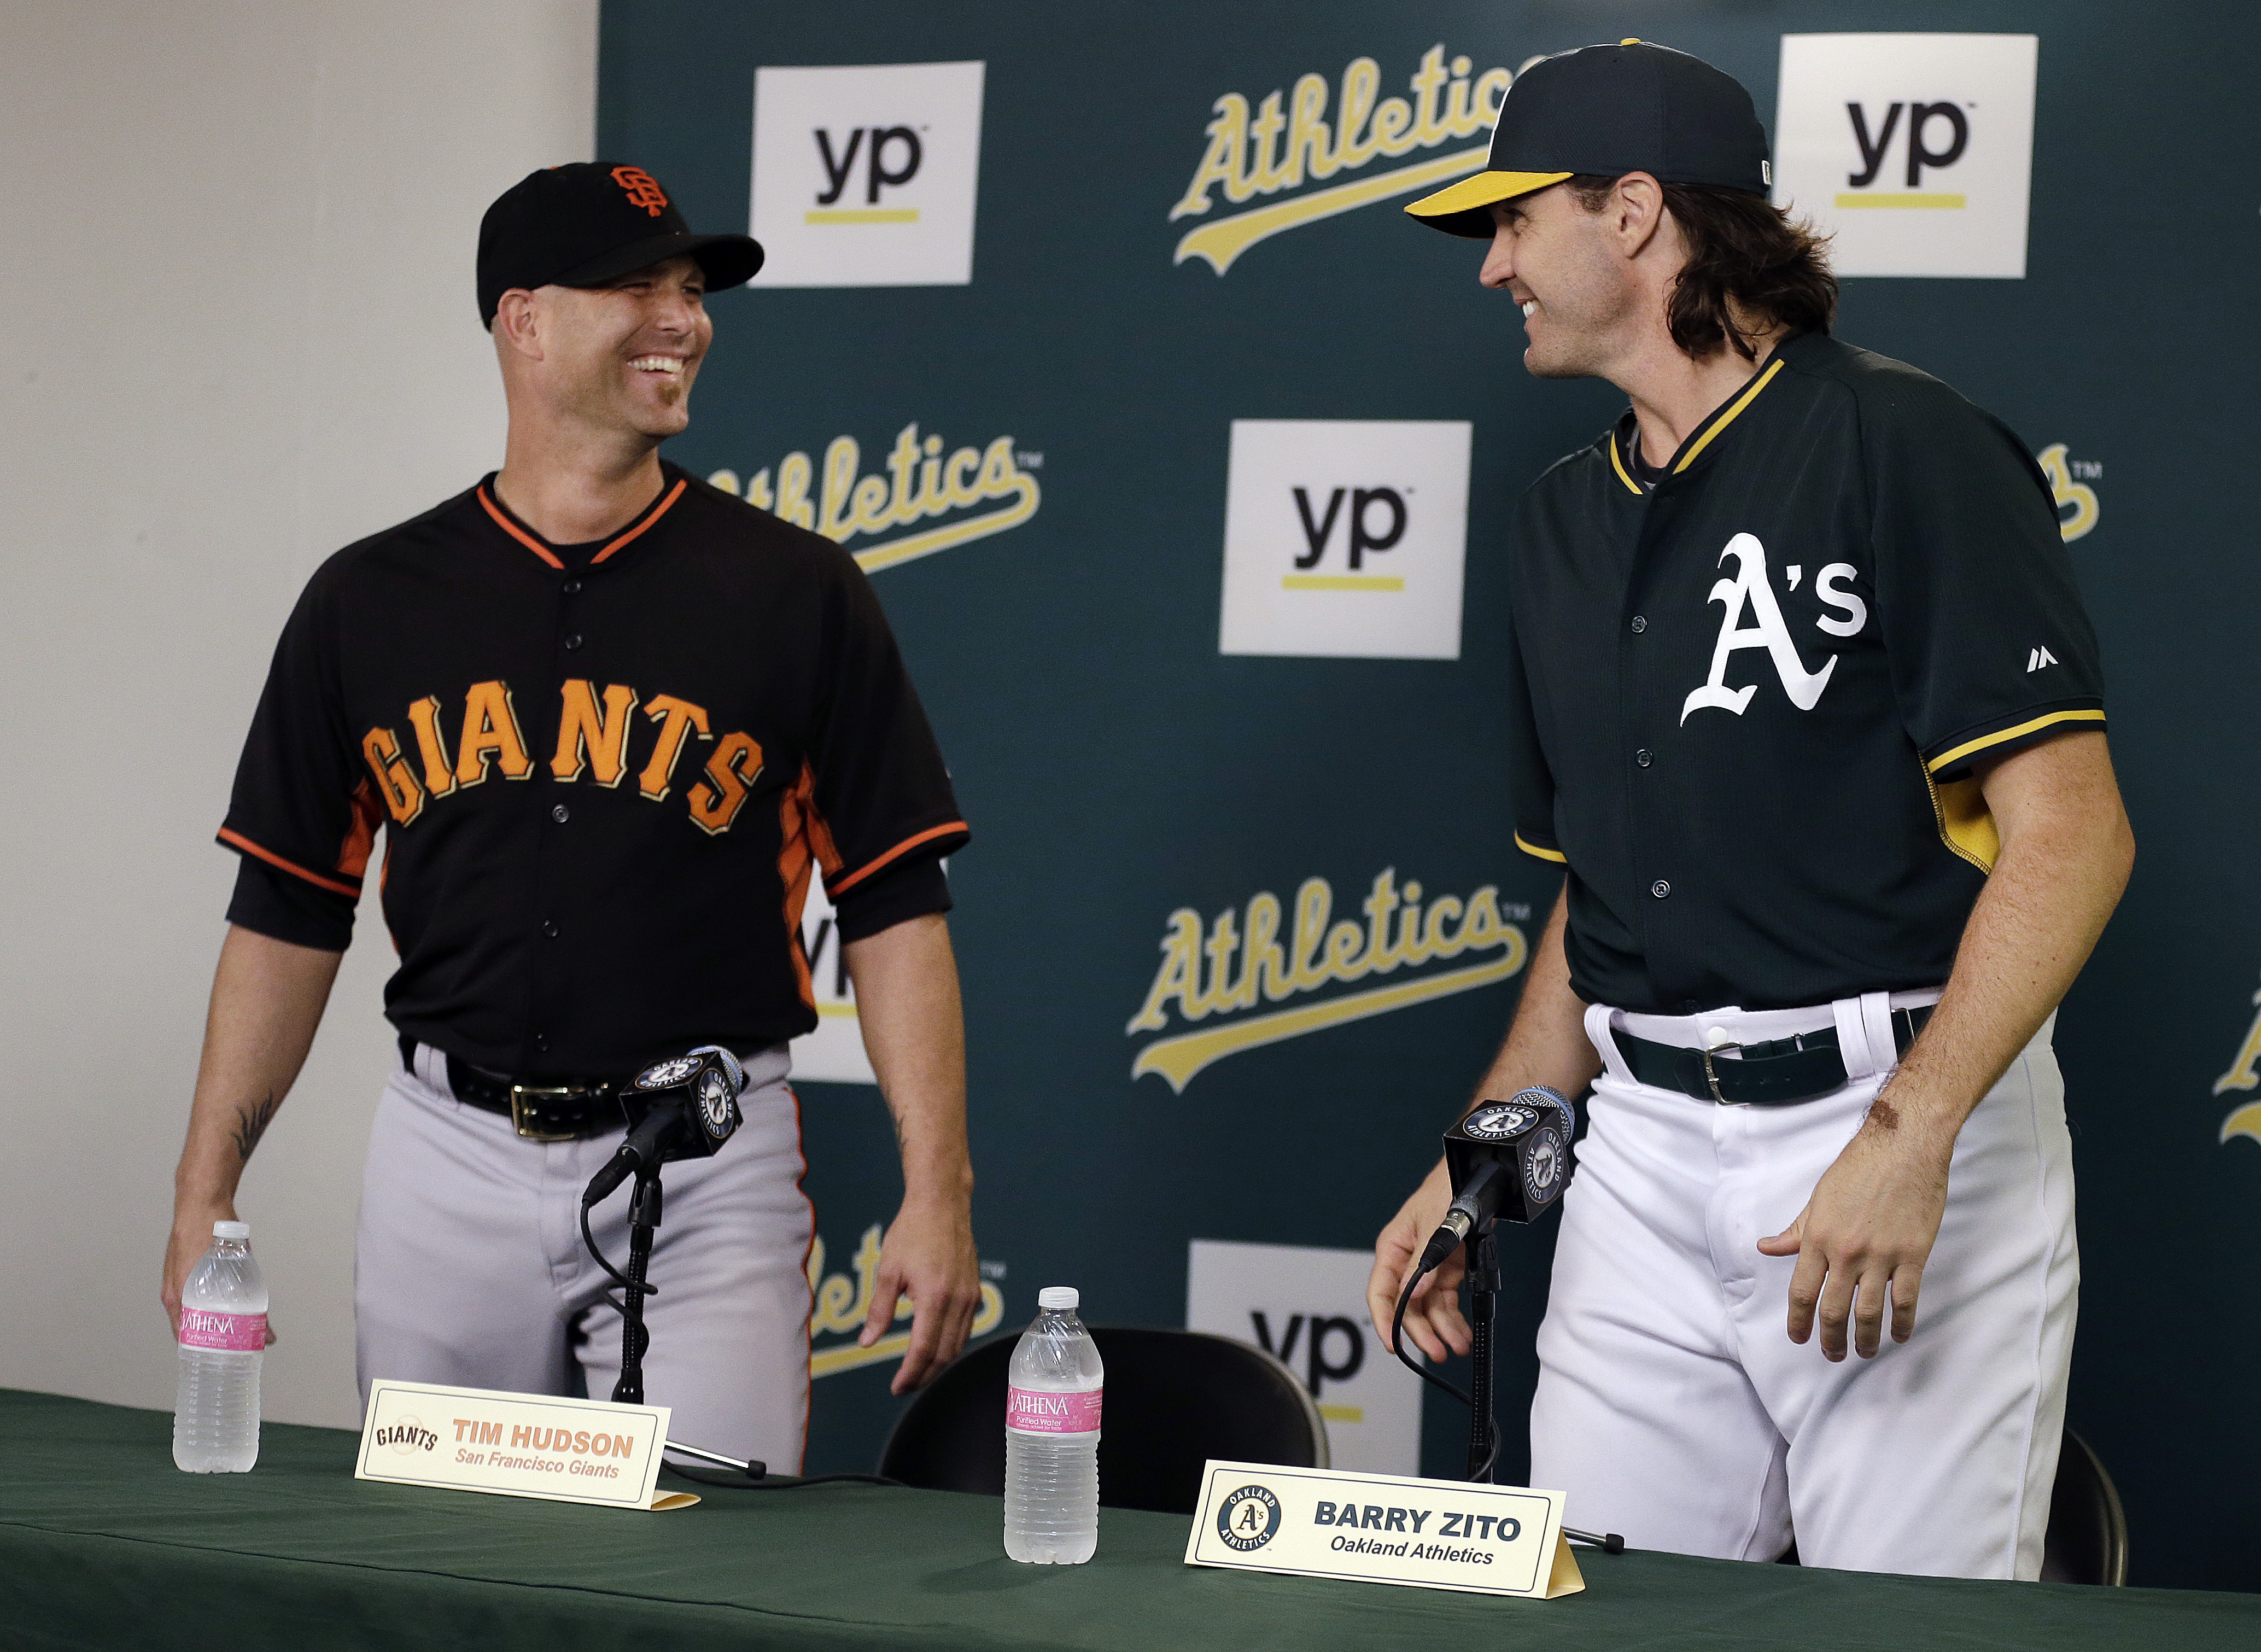 San Francisco Giants pitcher Tim Hudson, left, and Oakland Athletics pitcher Barry Zito smile at each other prior to a news conference before a baseball game Friday, Sept. 25, 2015, in Oakland, Calif. (AP Photo/Ben Margot)